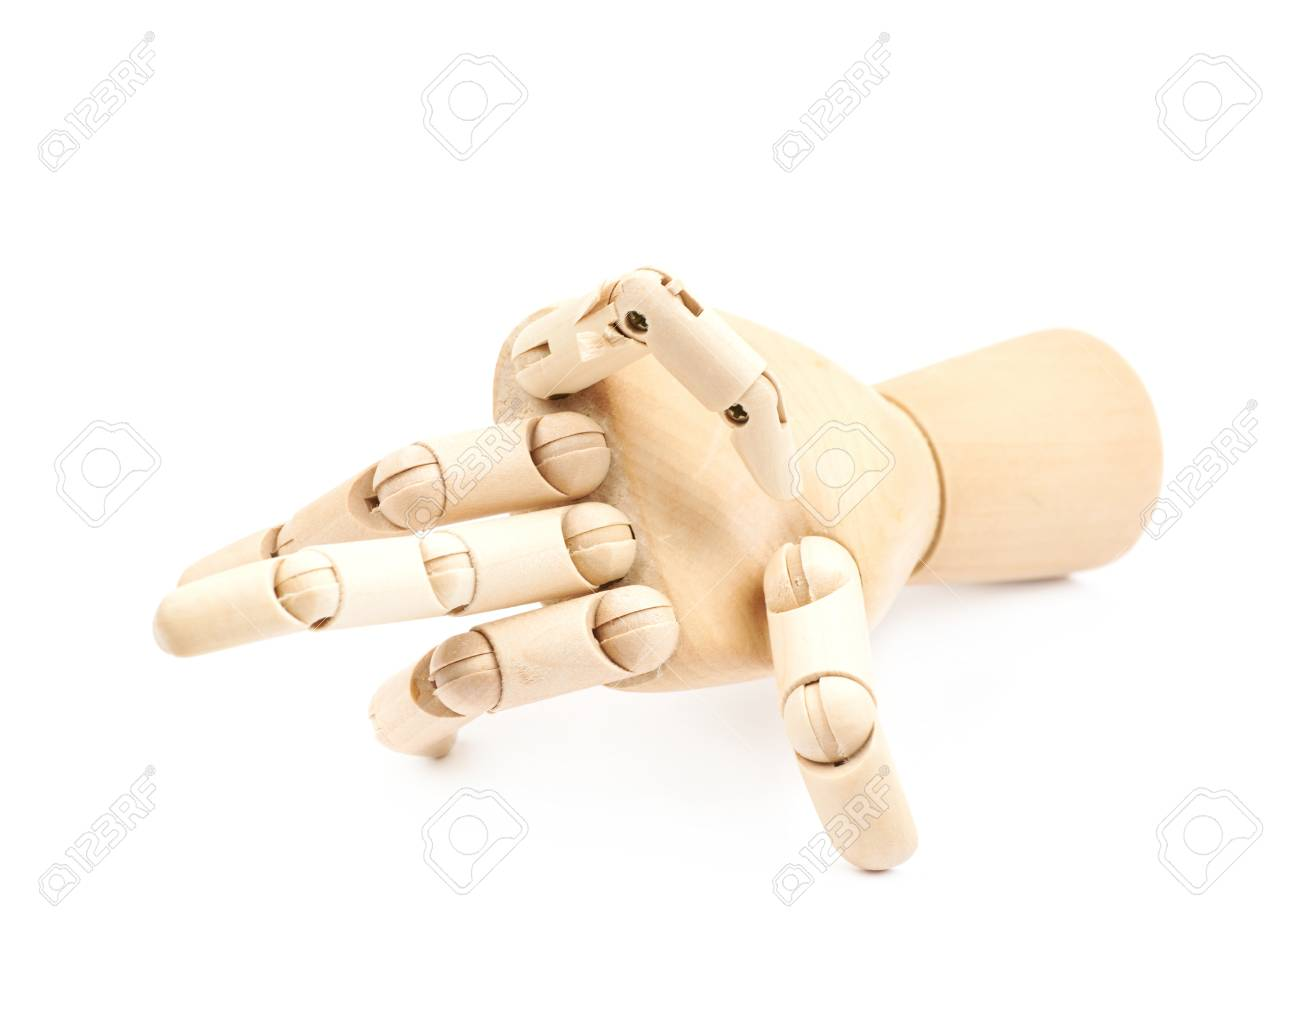 broken wooden hinge joint model of hand as a drawing reference